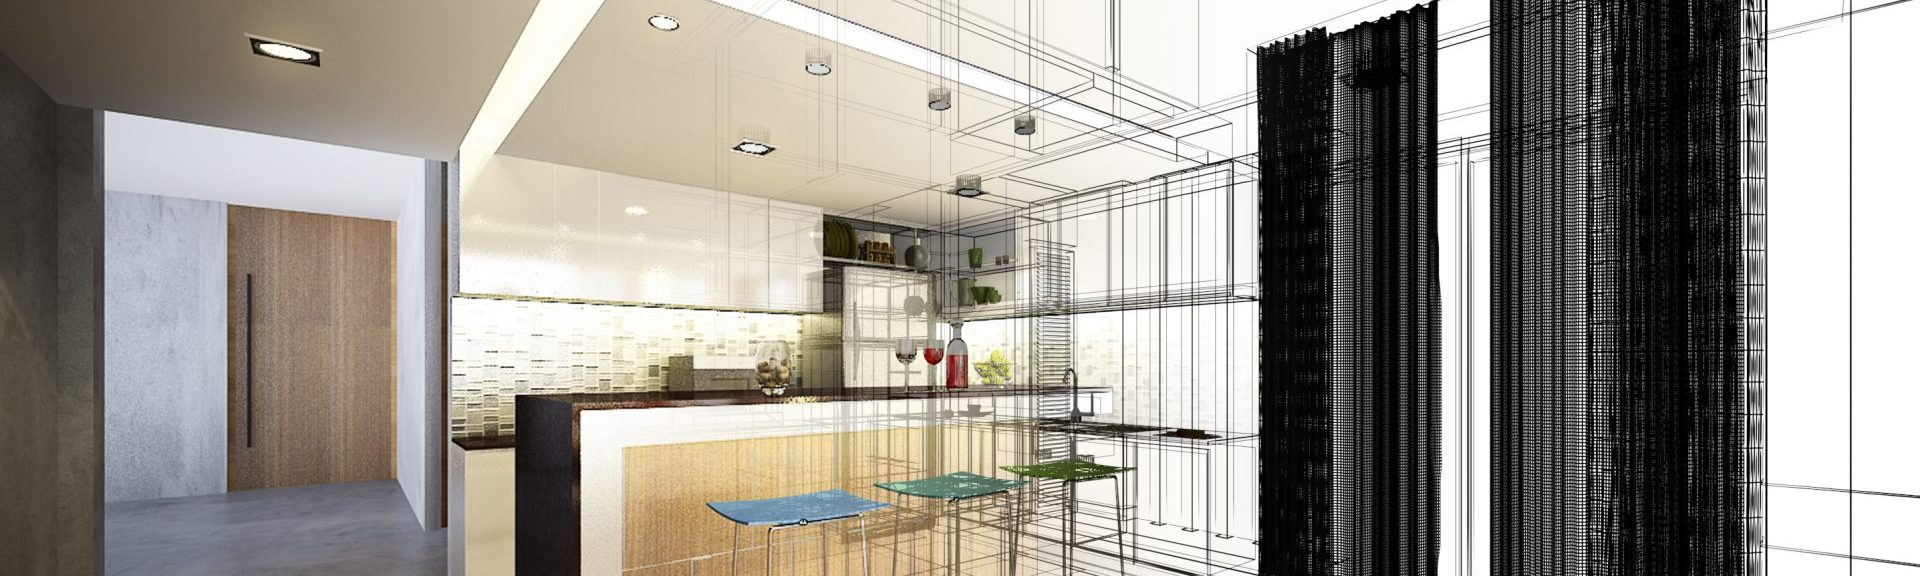 Kitchen Layout Abstract Outline CabinetCorp